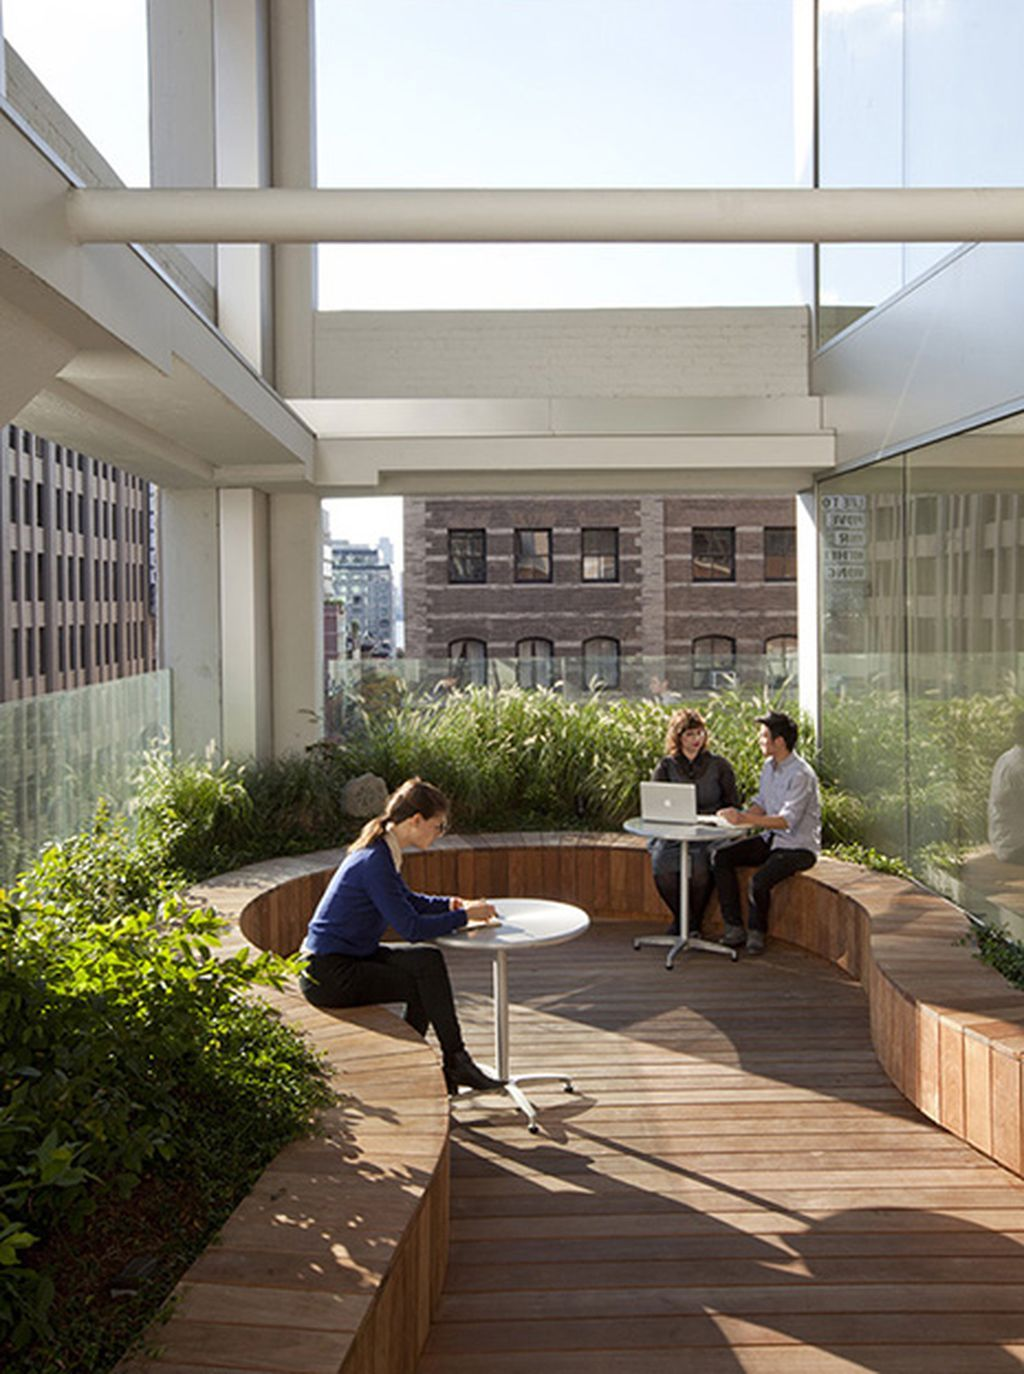 99 Cozy and Relaxing Rooftop Terrace Design Ideas You Will